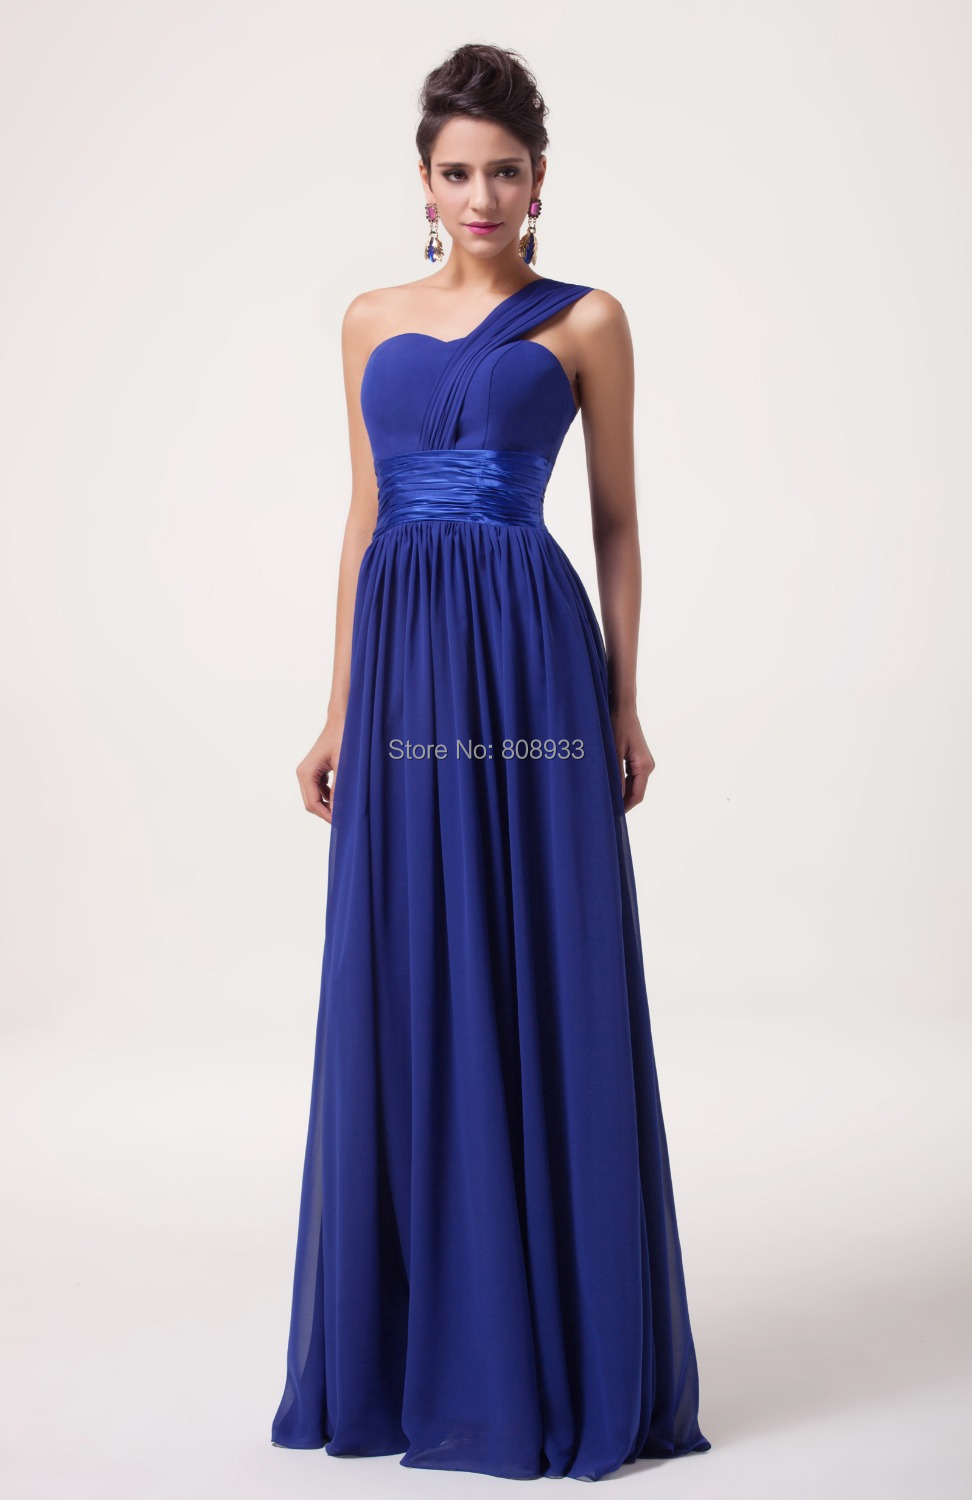 Blue long sleeve prom dress quotes for Royal blue wedding dresses cheap